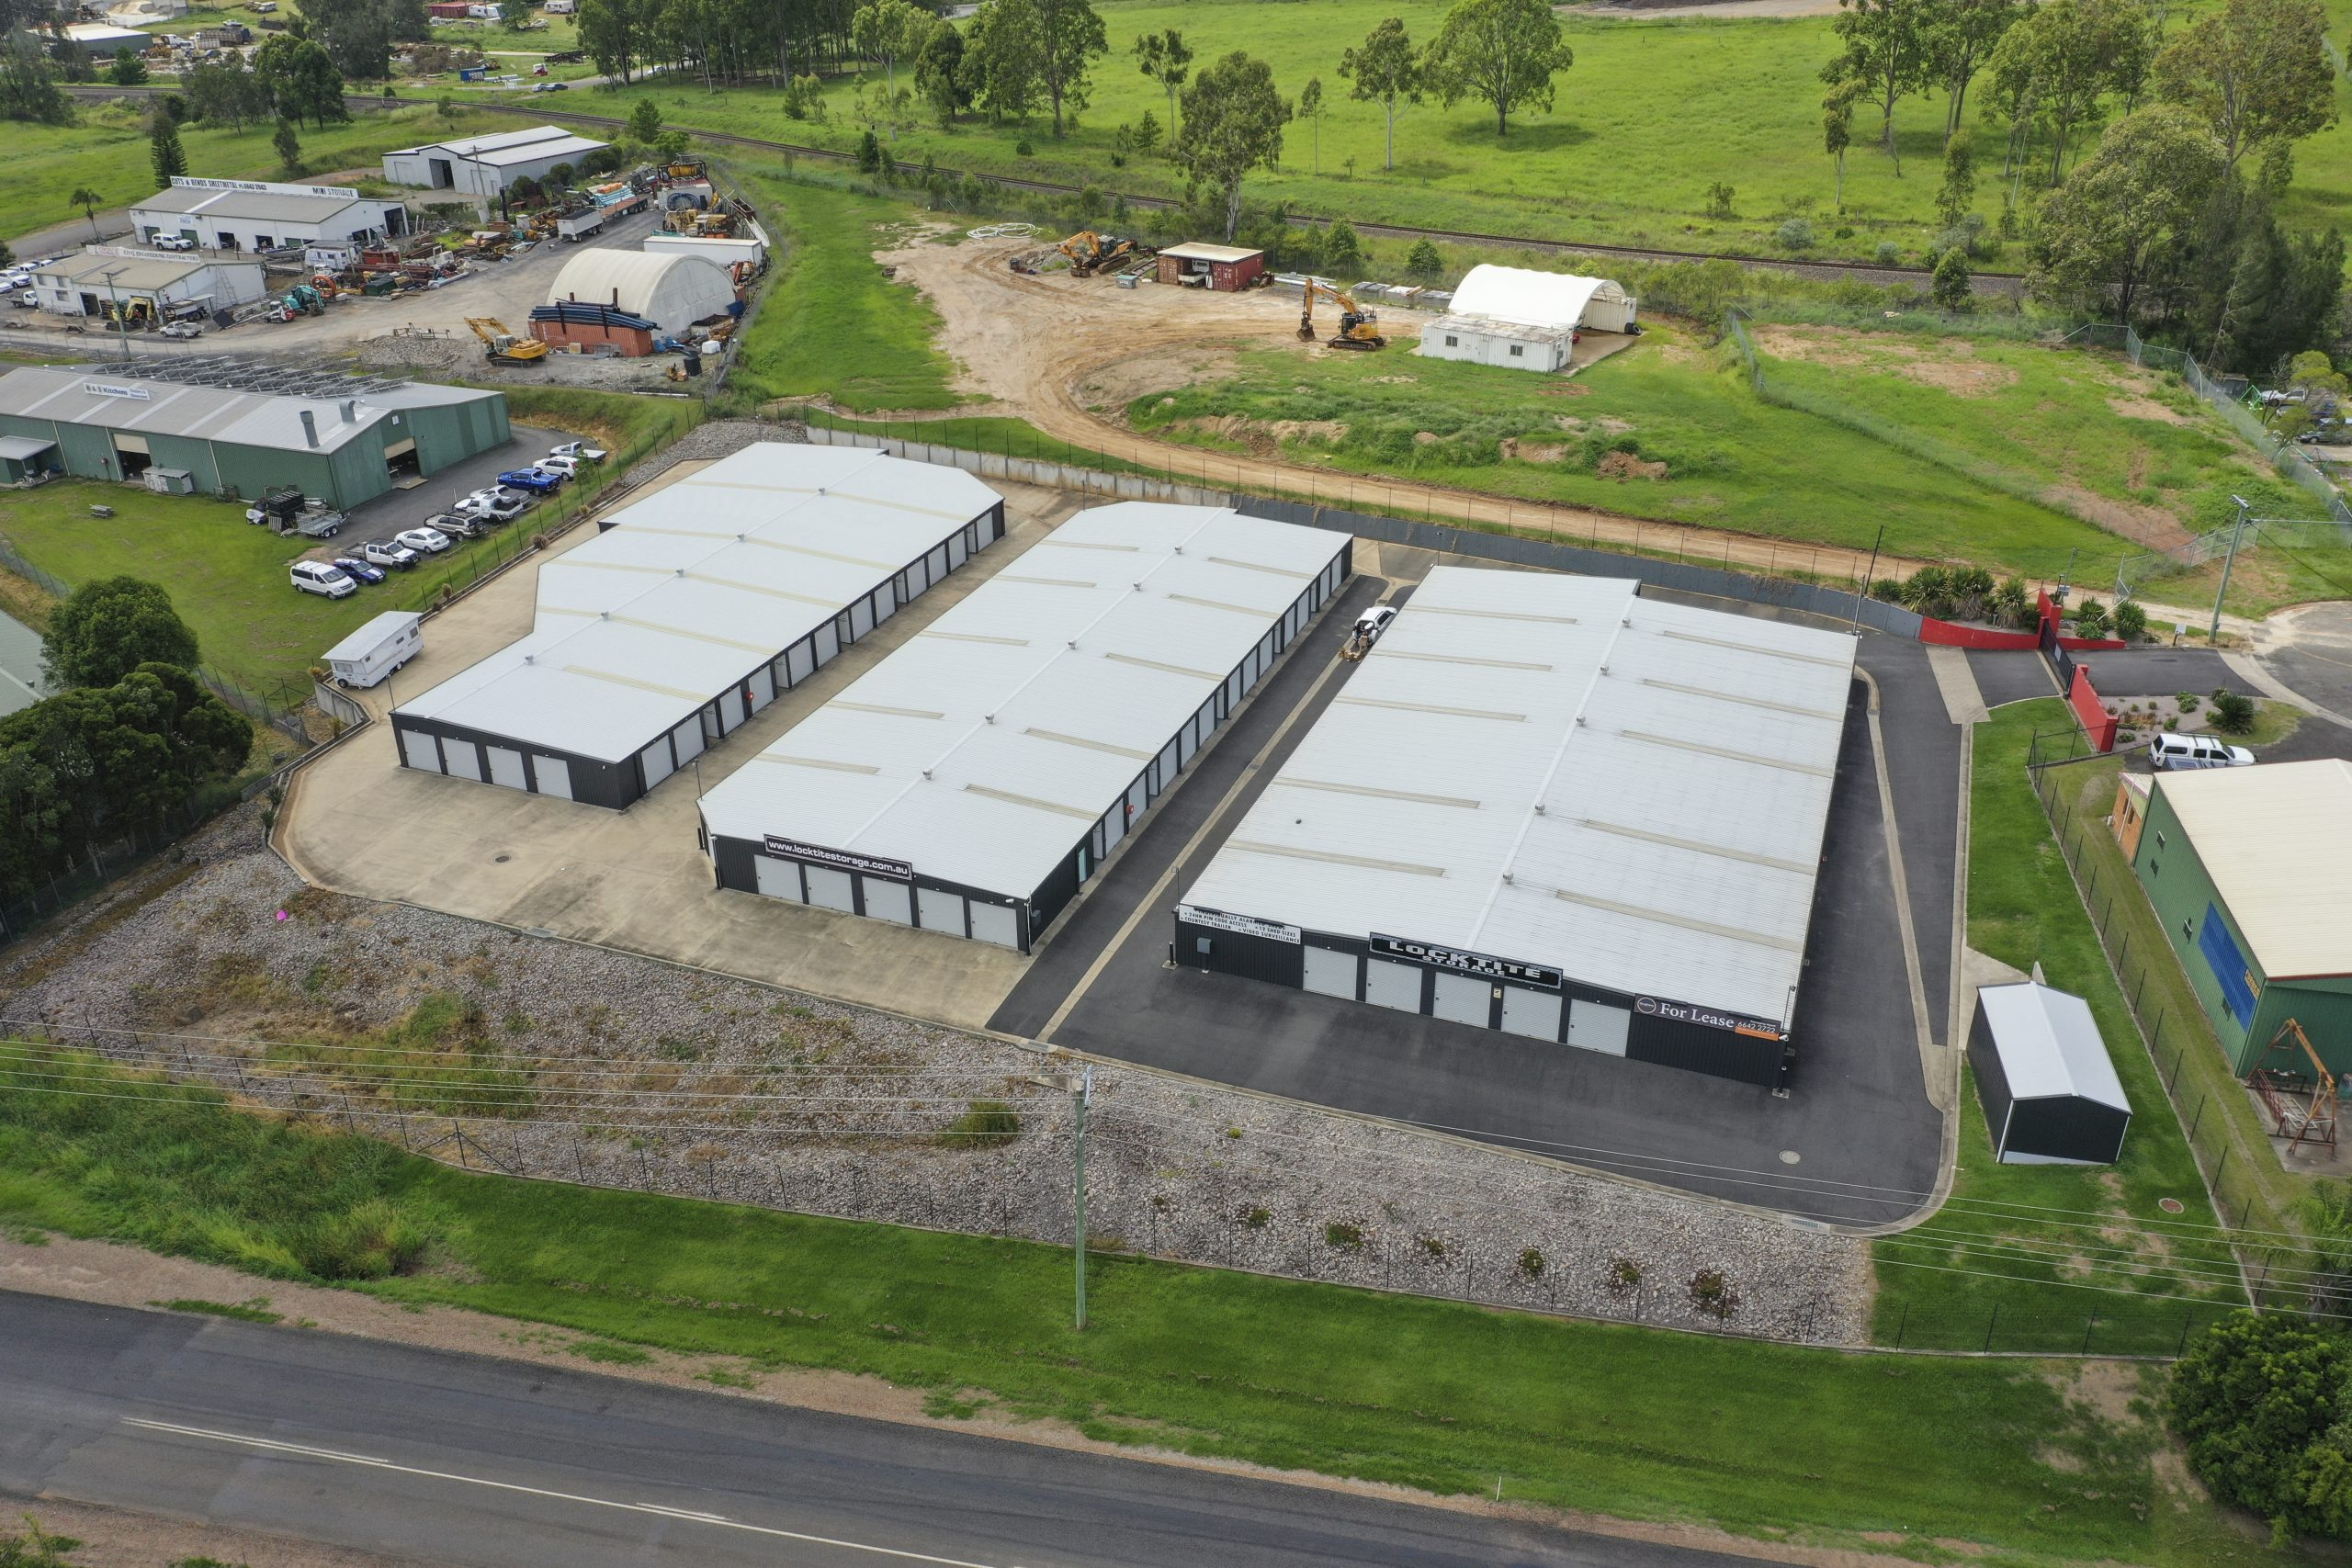 birds eye view of storage shed